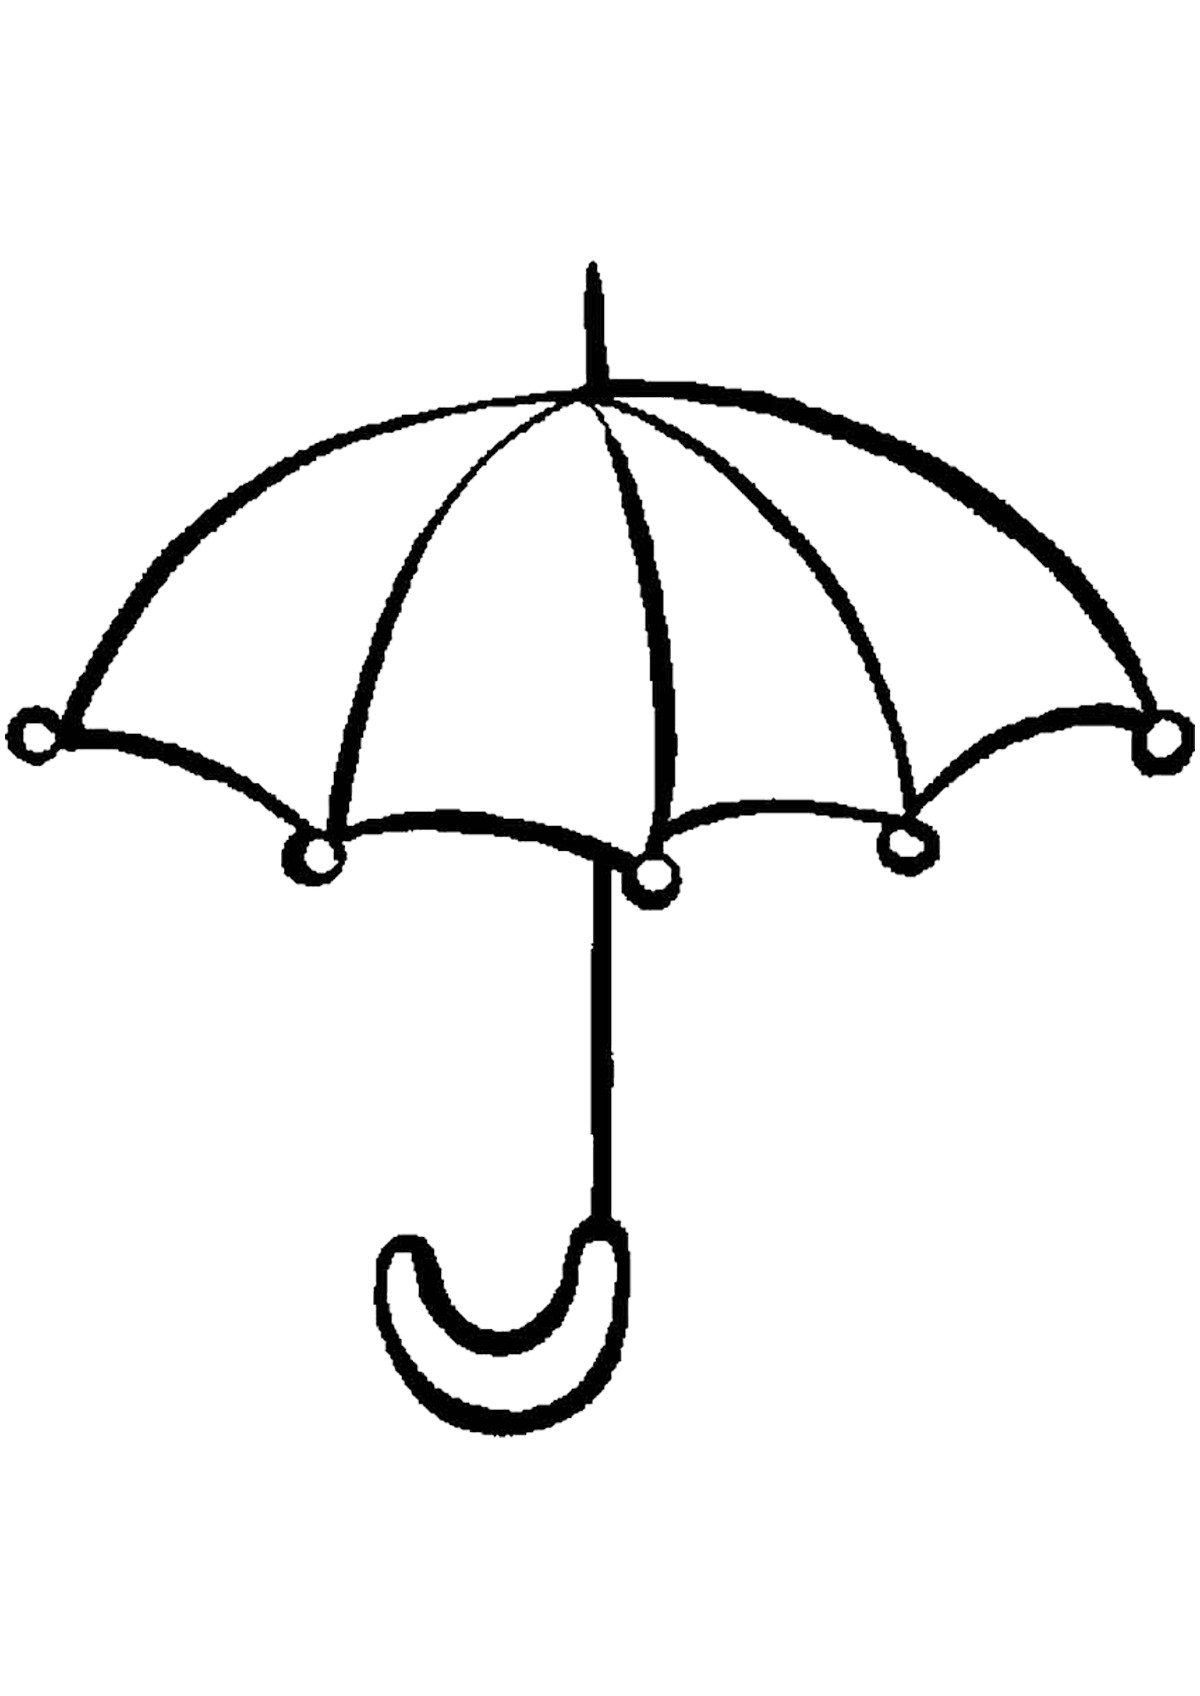 umbrella coloring page umbrella coloring pages for childrens printable for free coloring umbrella page